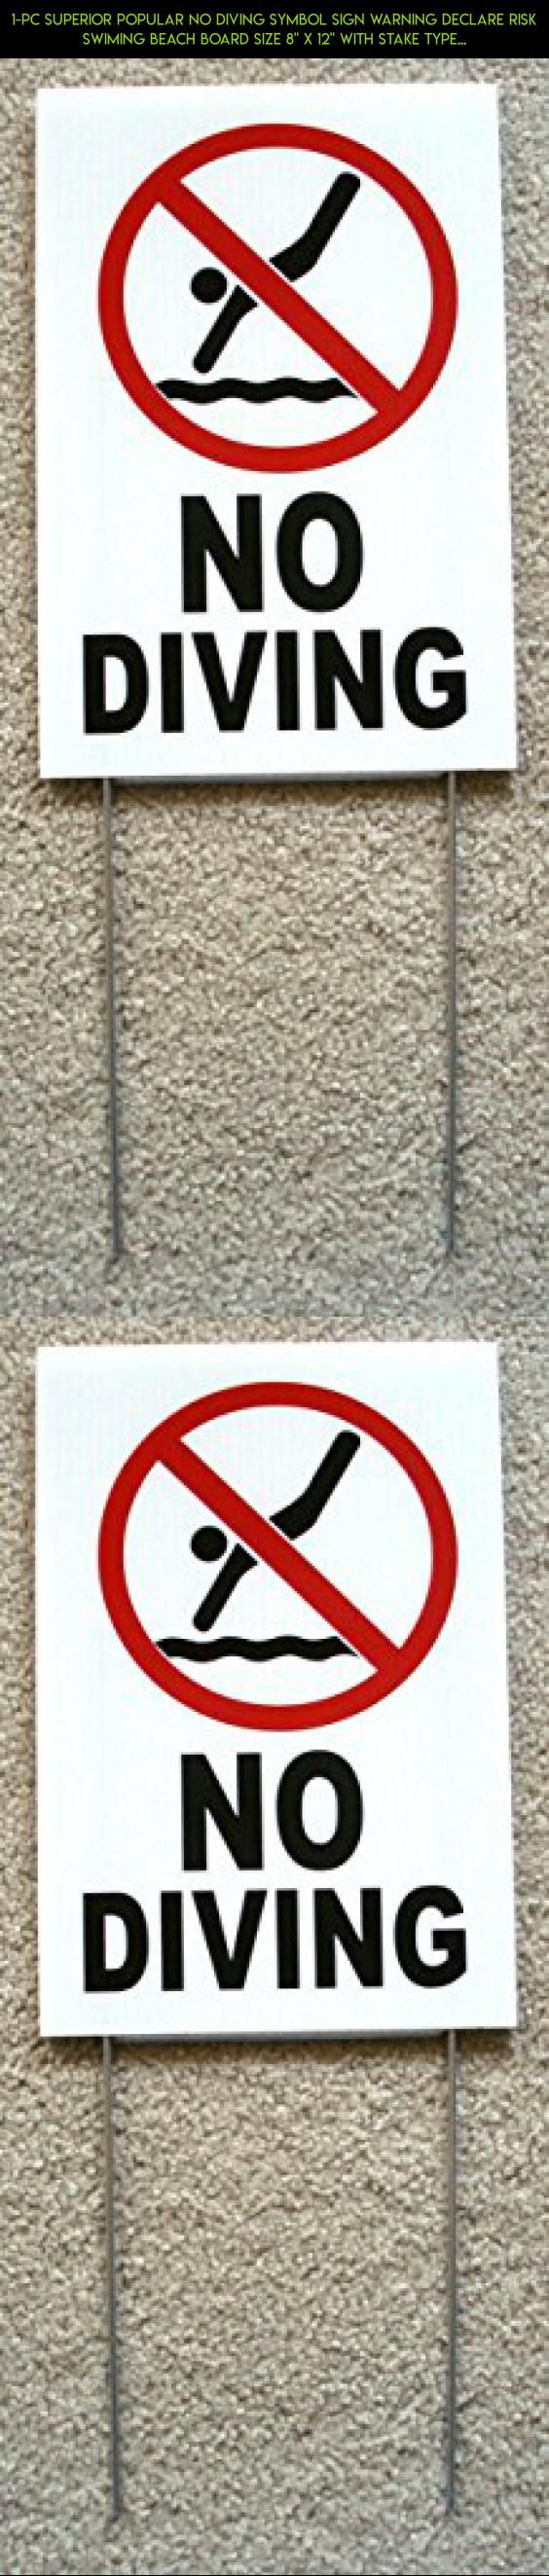 "1-Pc Superior Popular No Diving Symbol Sign Warning Declare Risk Swiming Beach Board Size 8"" x 12"" with Stake Type White #kit #shopping #sign #room #tech #camera #plans #products #gadgets #storage #drone #racing #fpv #technology #parts"